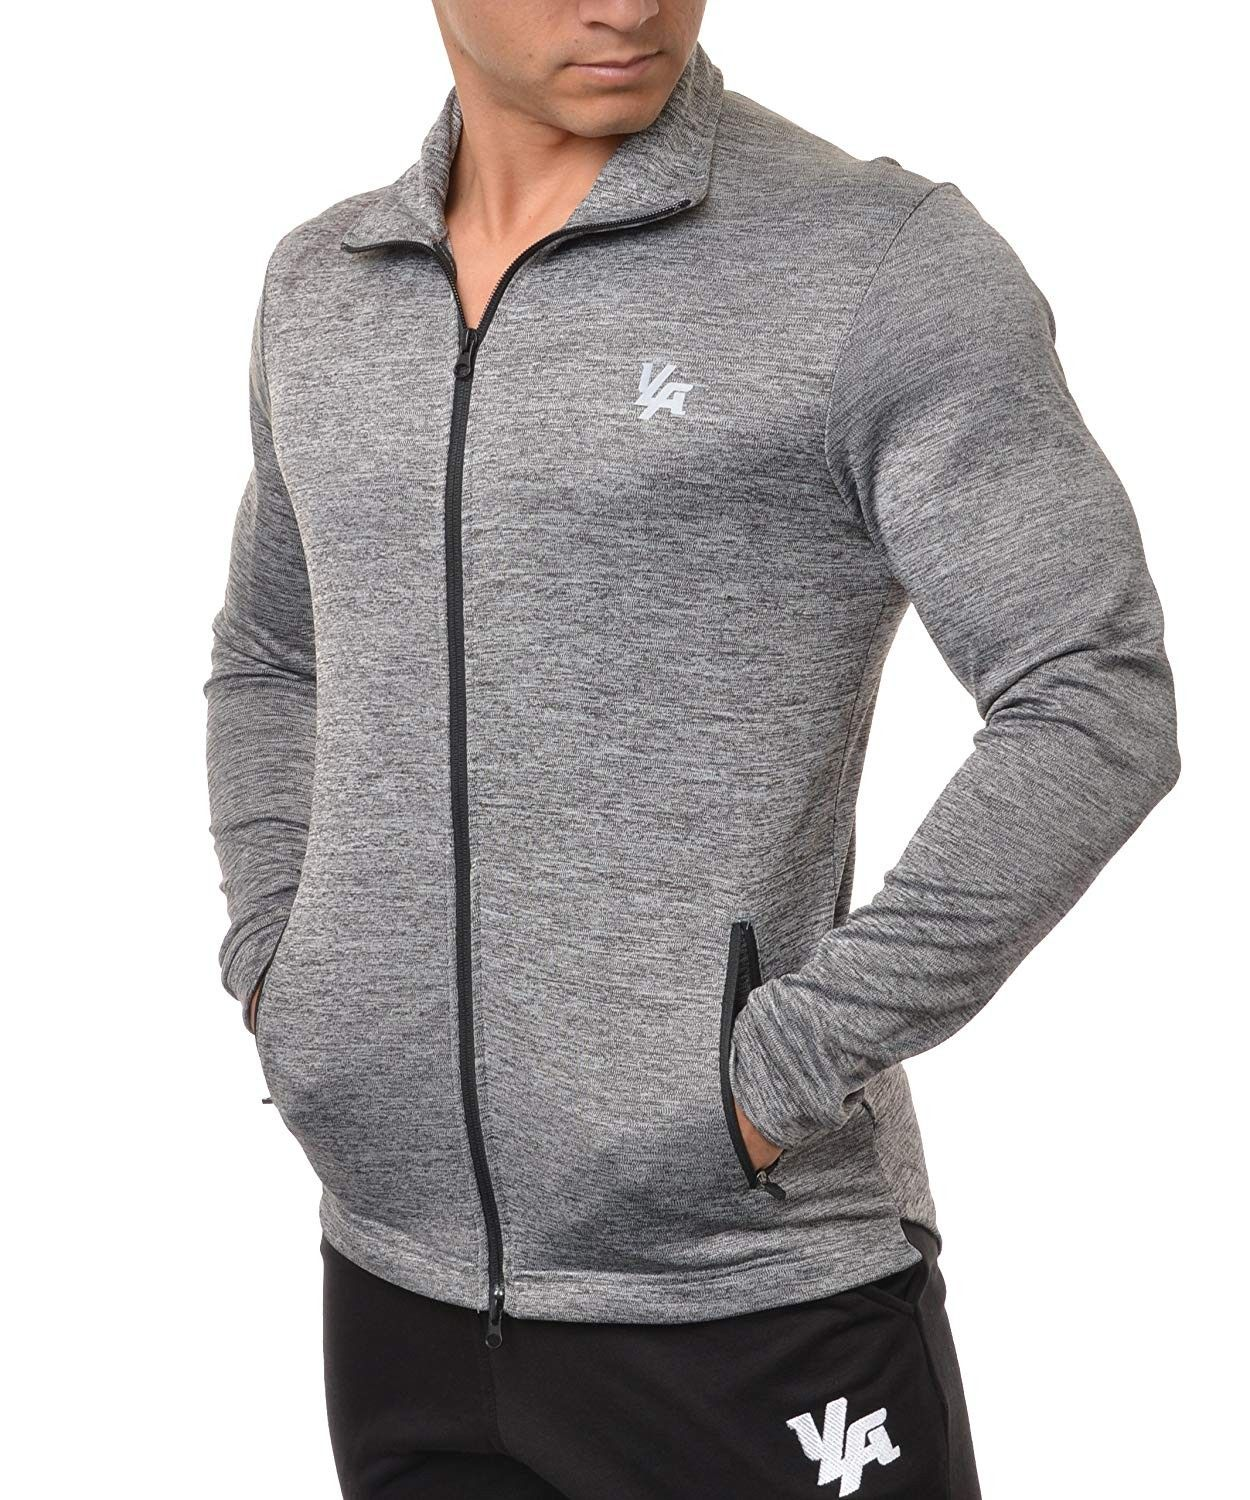 Light Running Jacket For Men Men S Outwear And Fitness Apparel 508 Grey Cu18c6tuzkc Size Small Mens Outwear Running Jacket Workout Clothes [ 1500 x 1250 Pixel ]